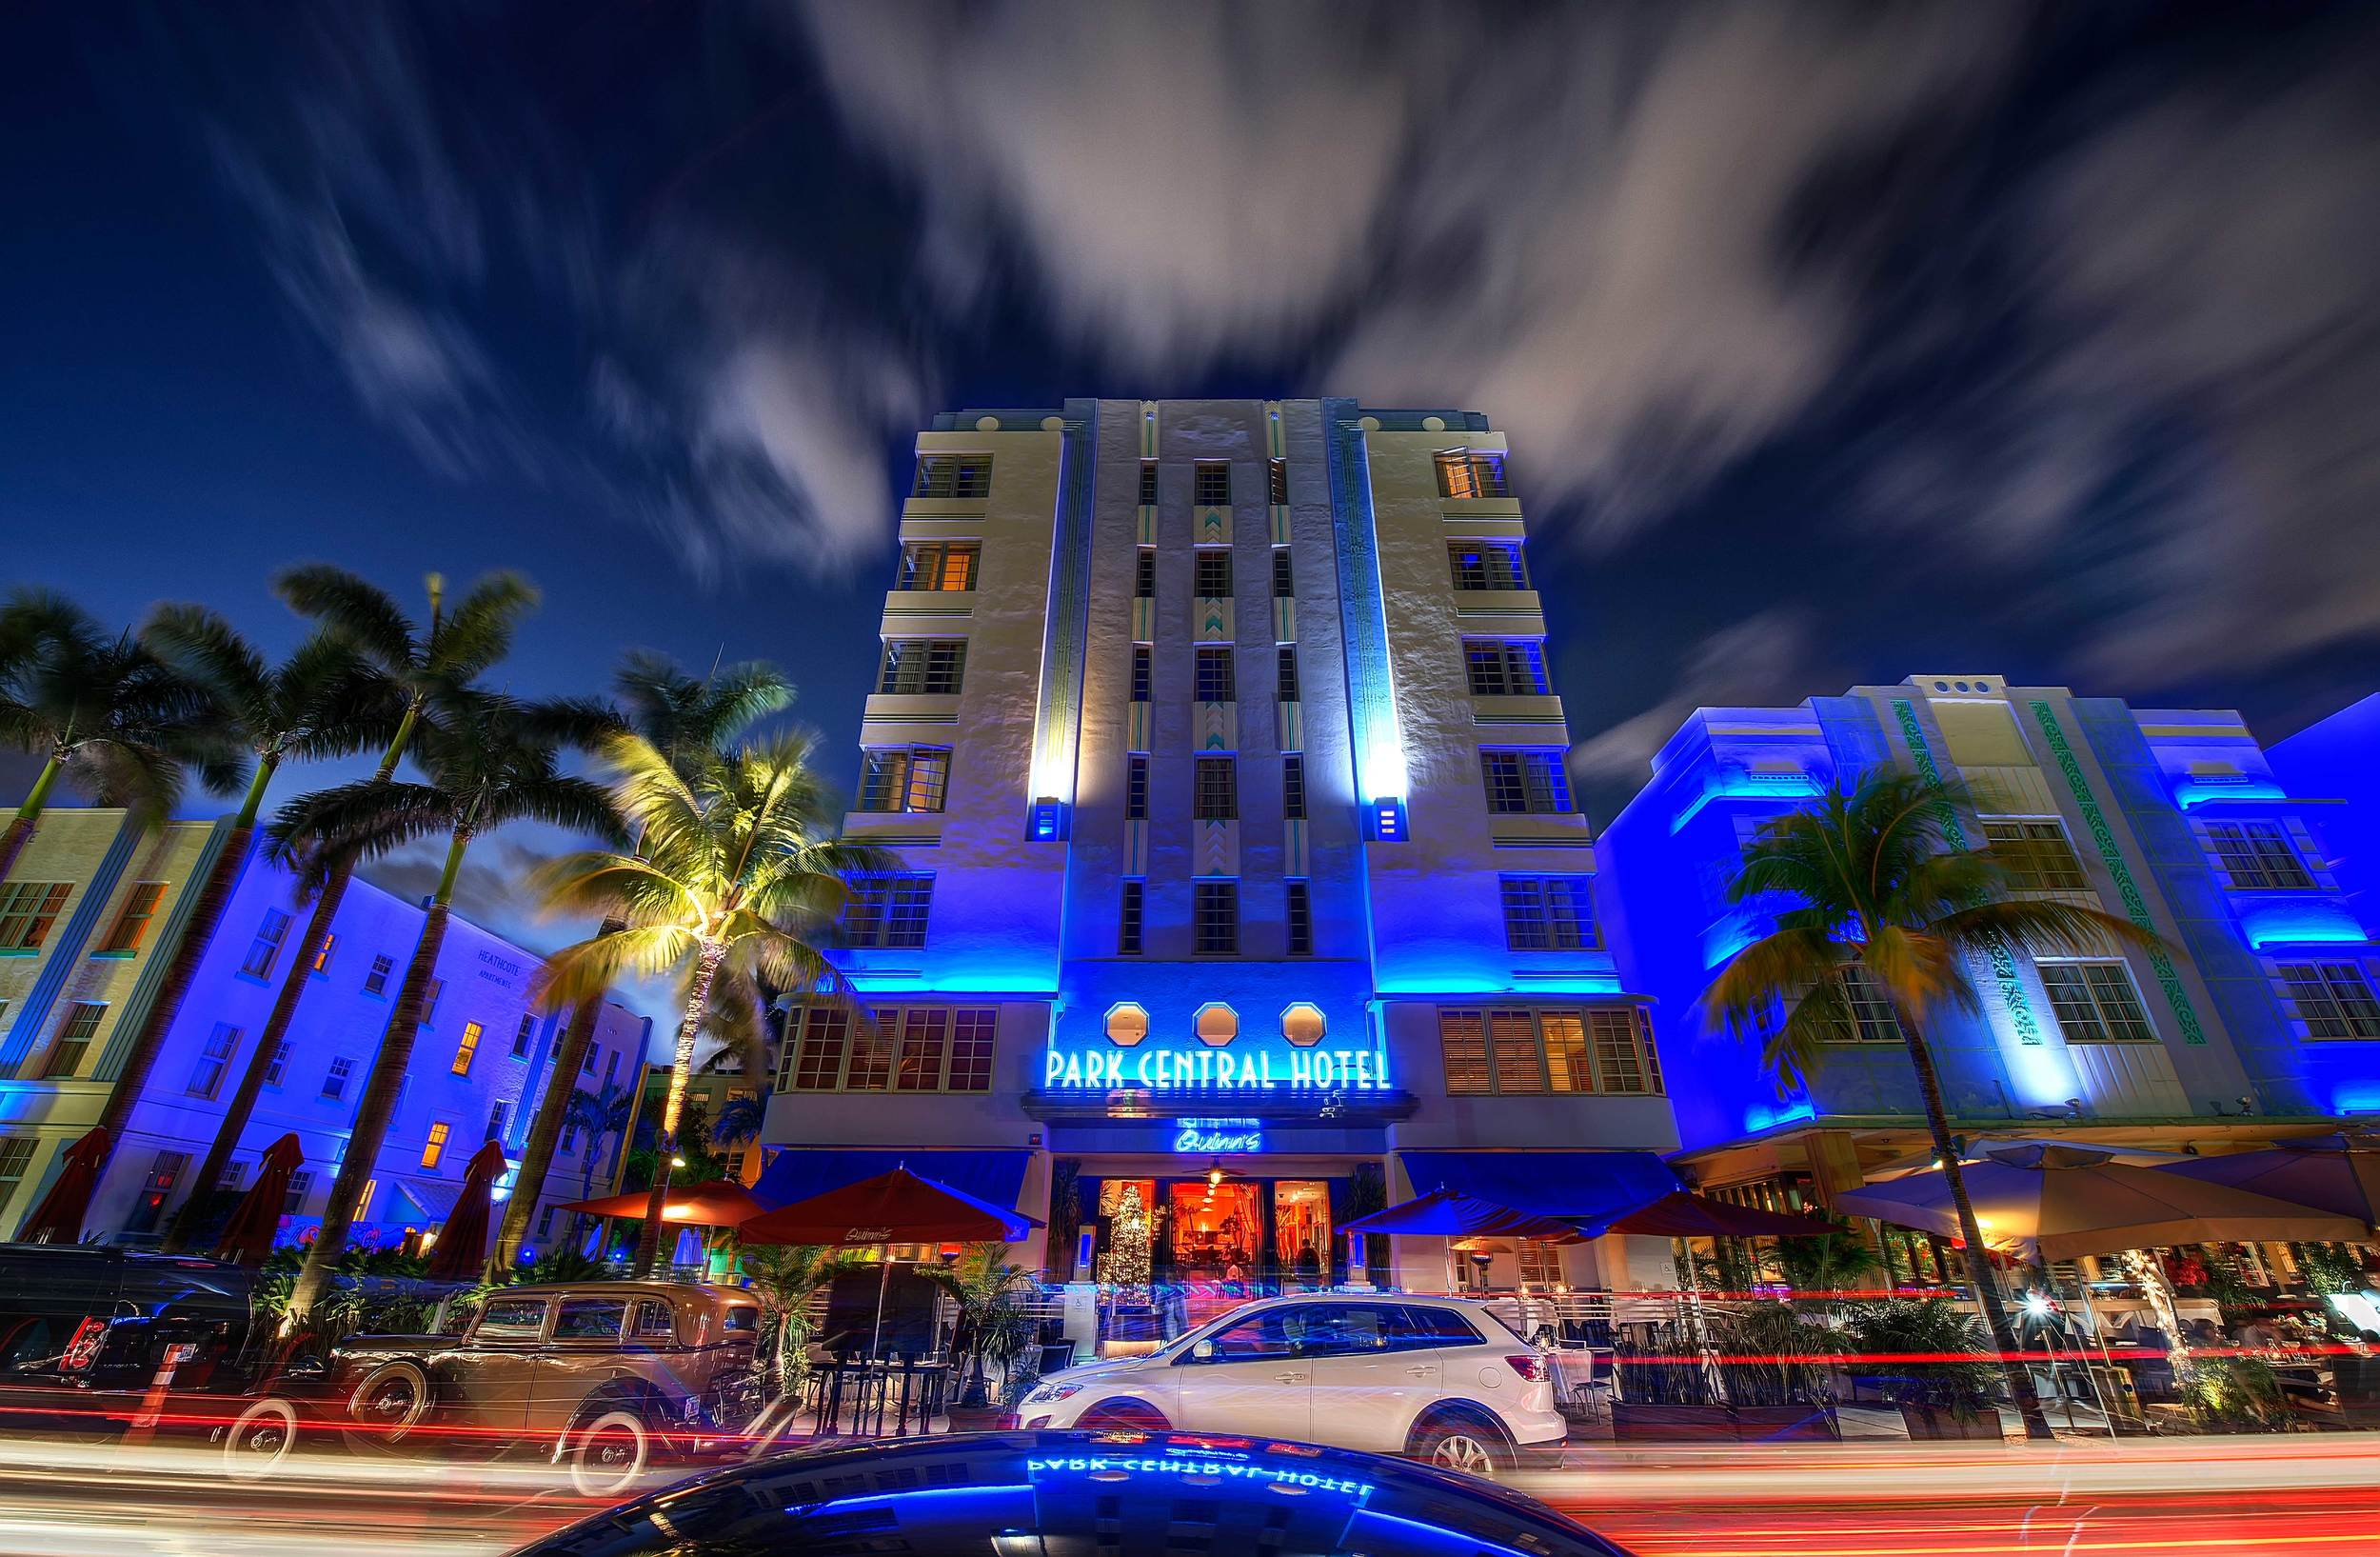 Park Central Hotel in South Beach